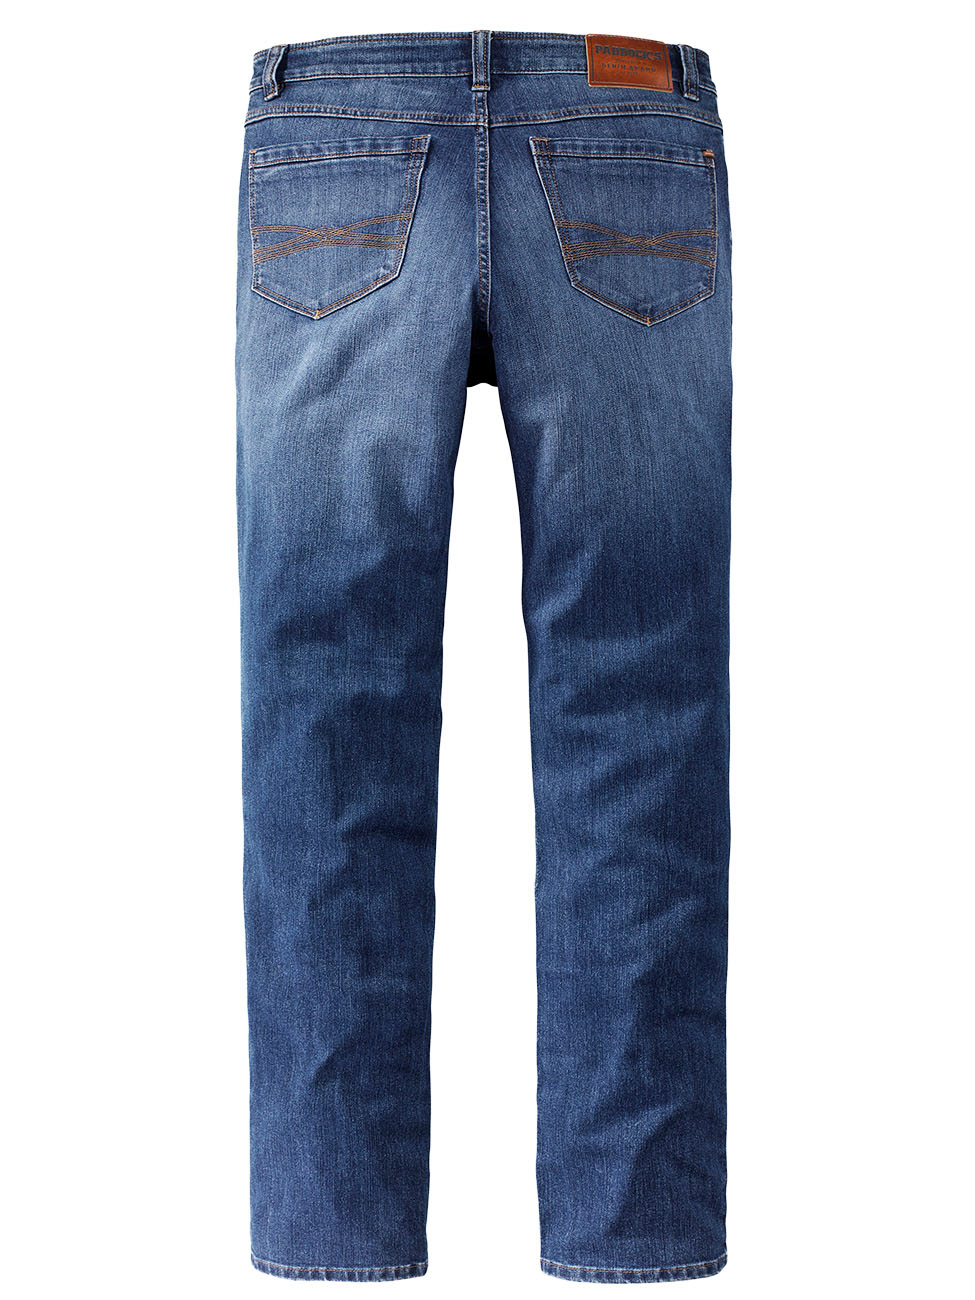 paddock-s-herren-jeans-ranger-pipe-tight-fit-blau-blue-stone-soft-use